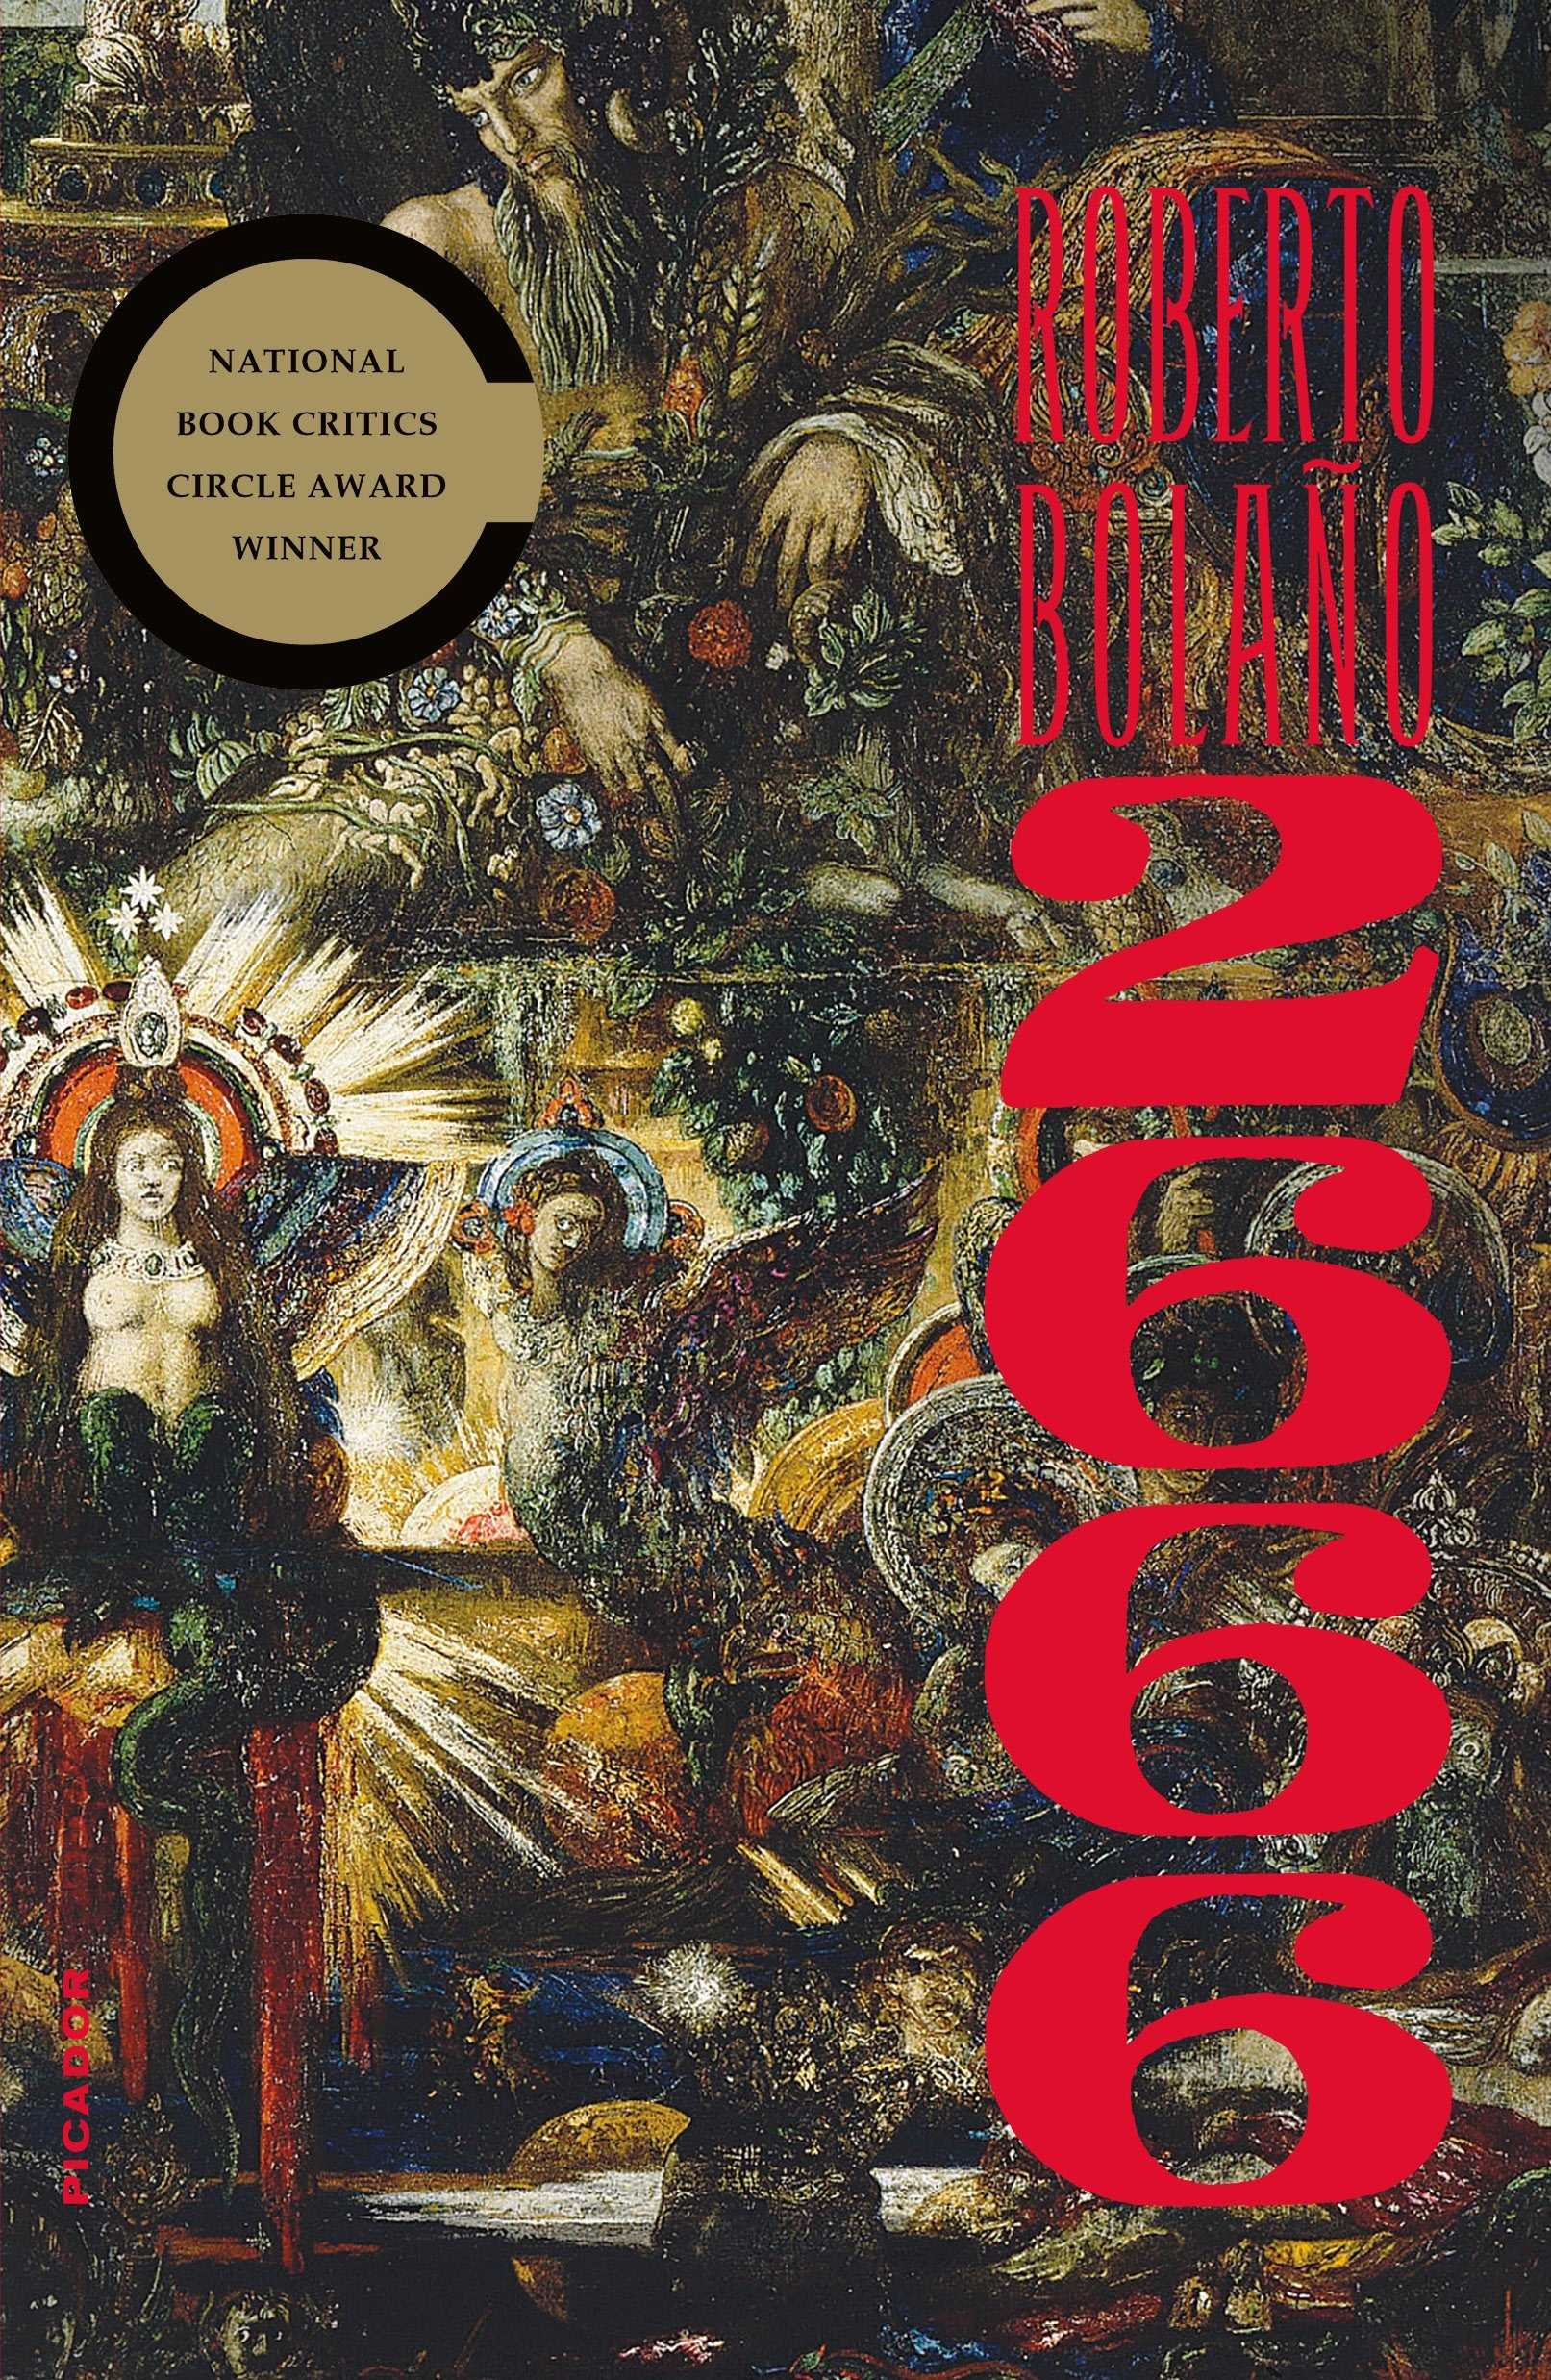 2666: A Novel: Roberto Bolaño, Natasha Wimmer: 9780312429218: Amazon.com:  Books